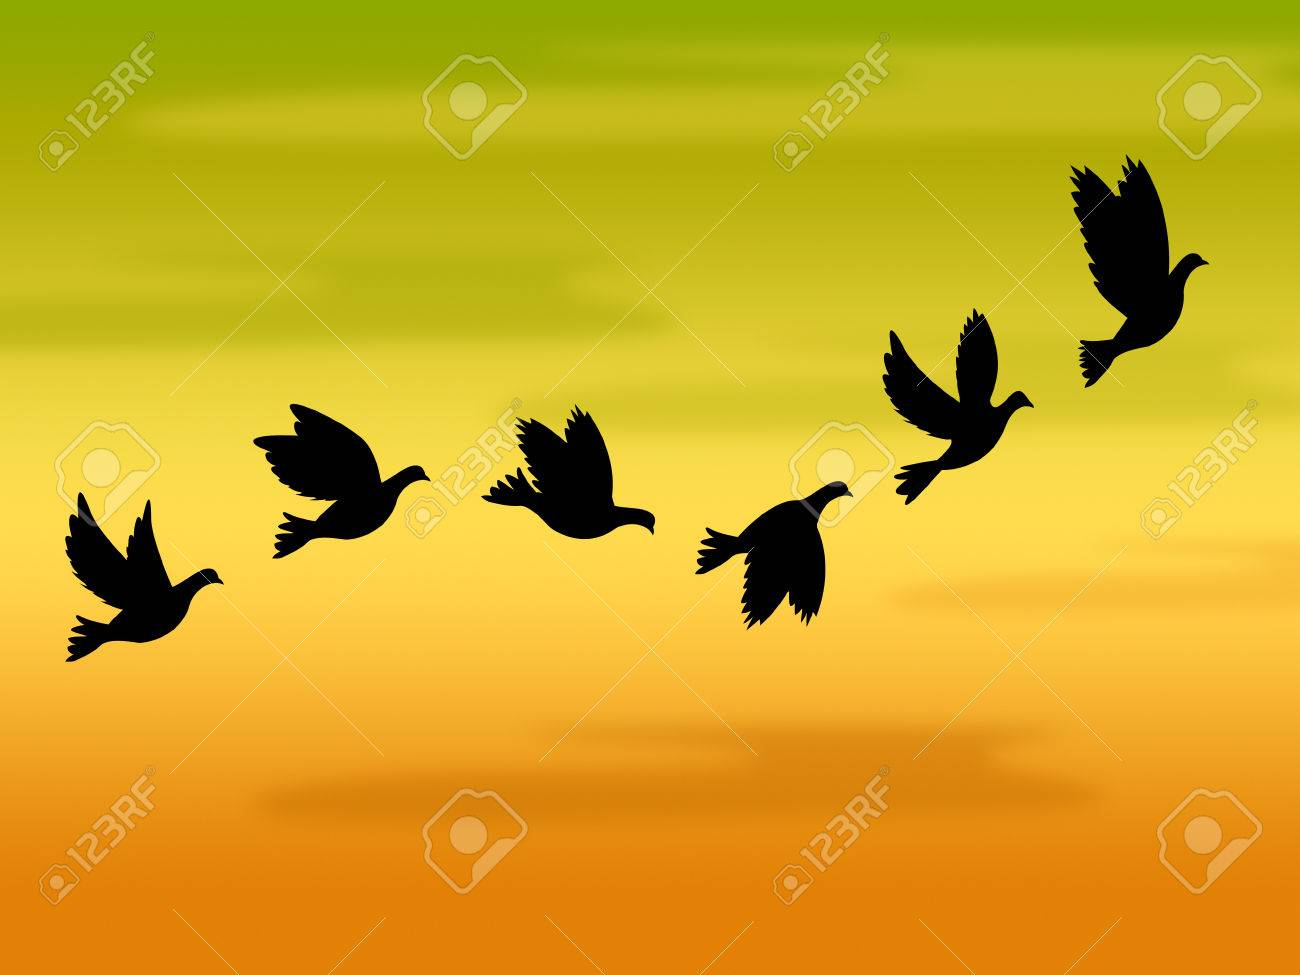 Flying Birds Meaning Summer Time And Warmth